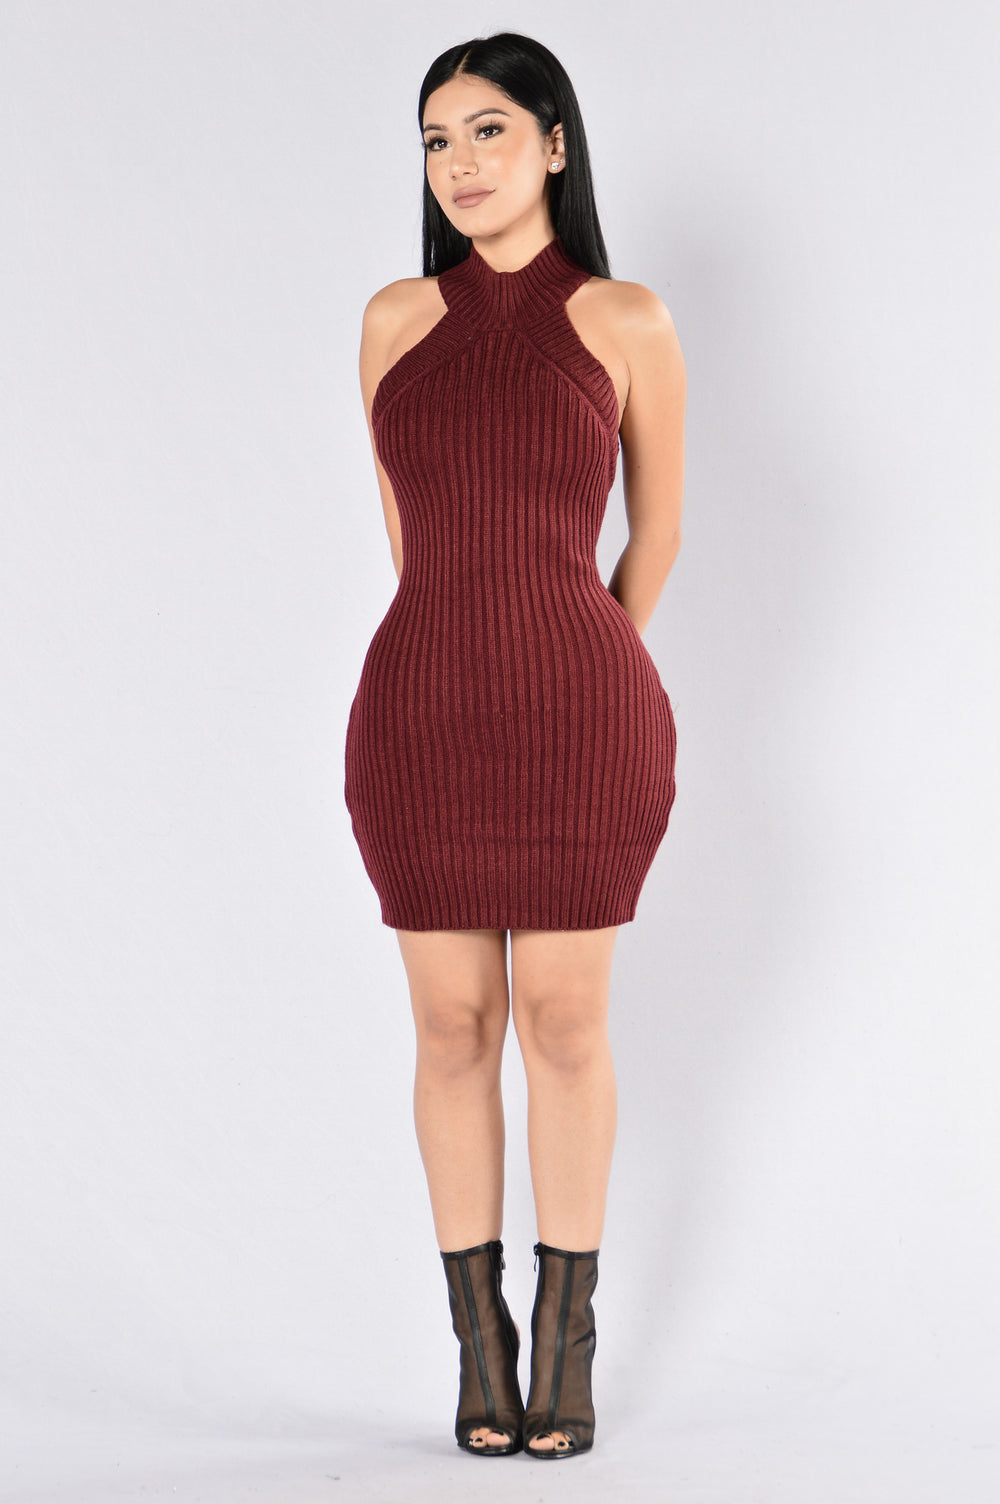 Kiss It Better Dress - Burgundy